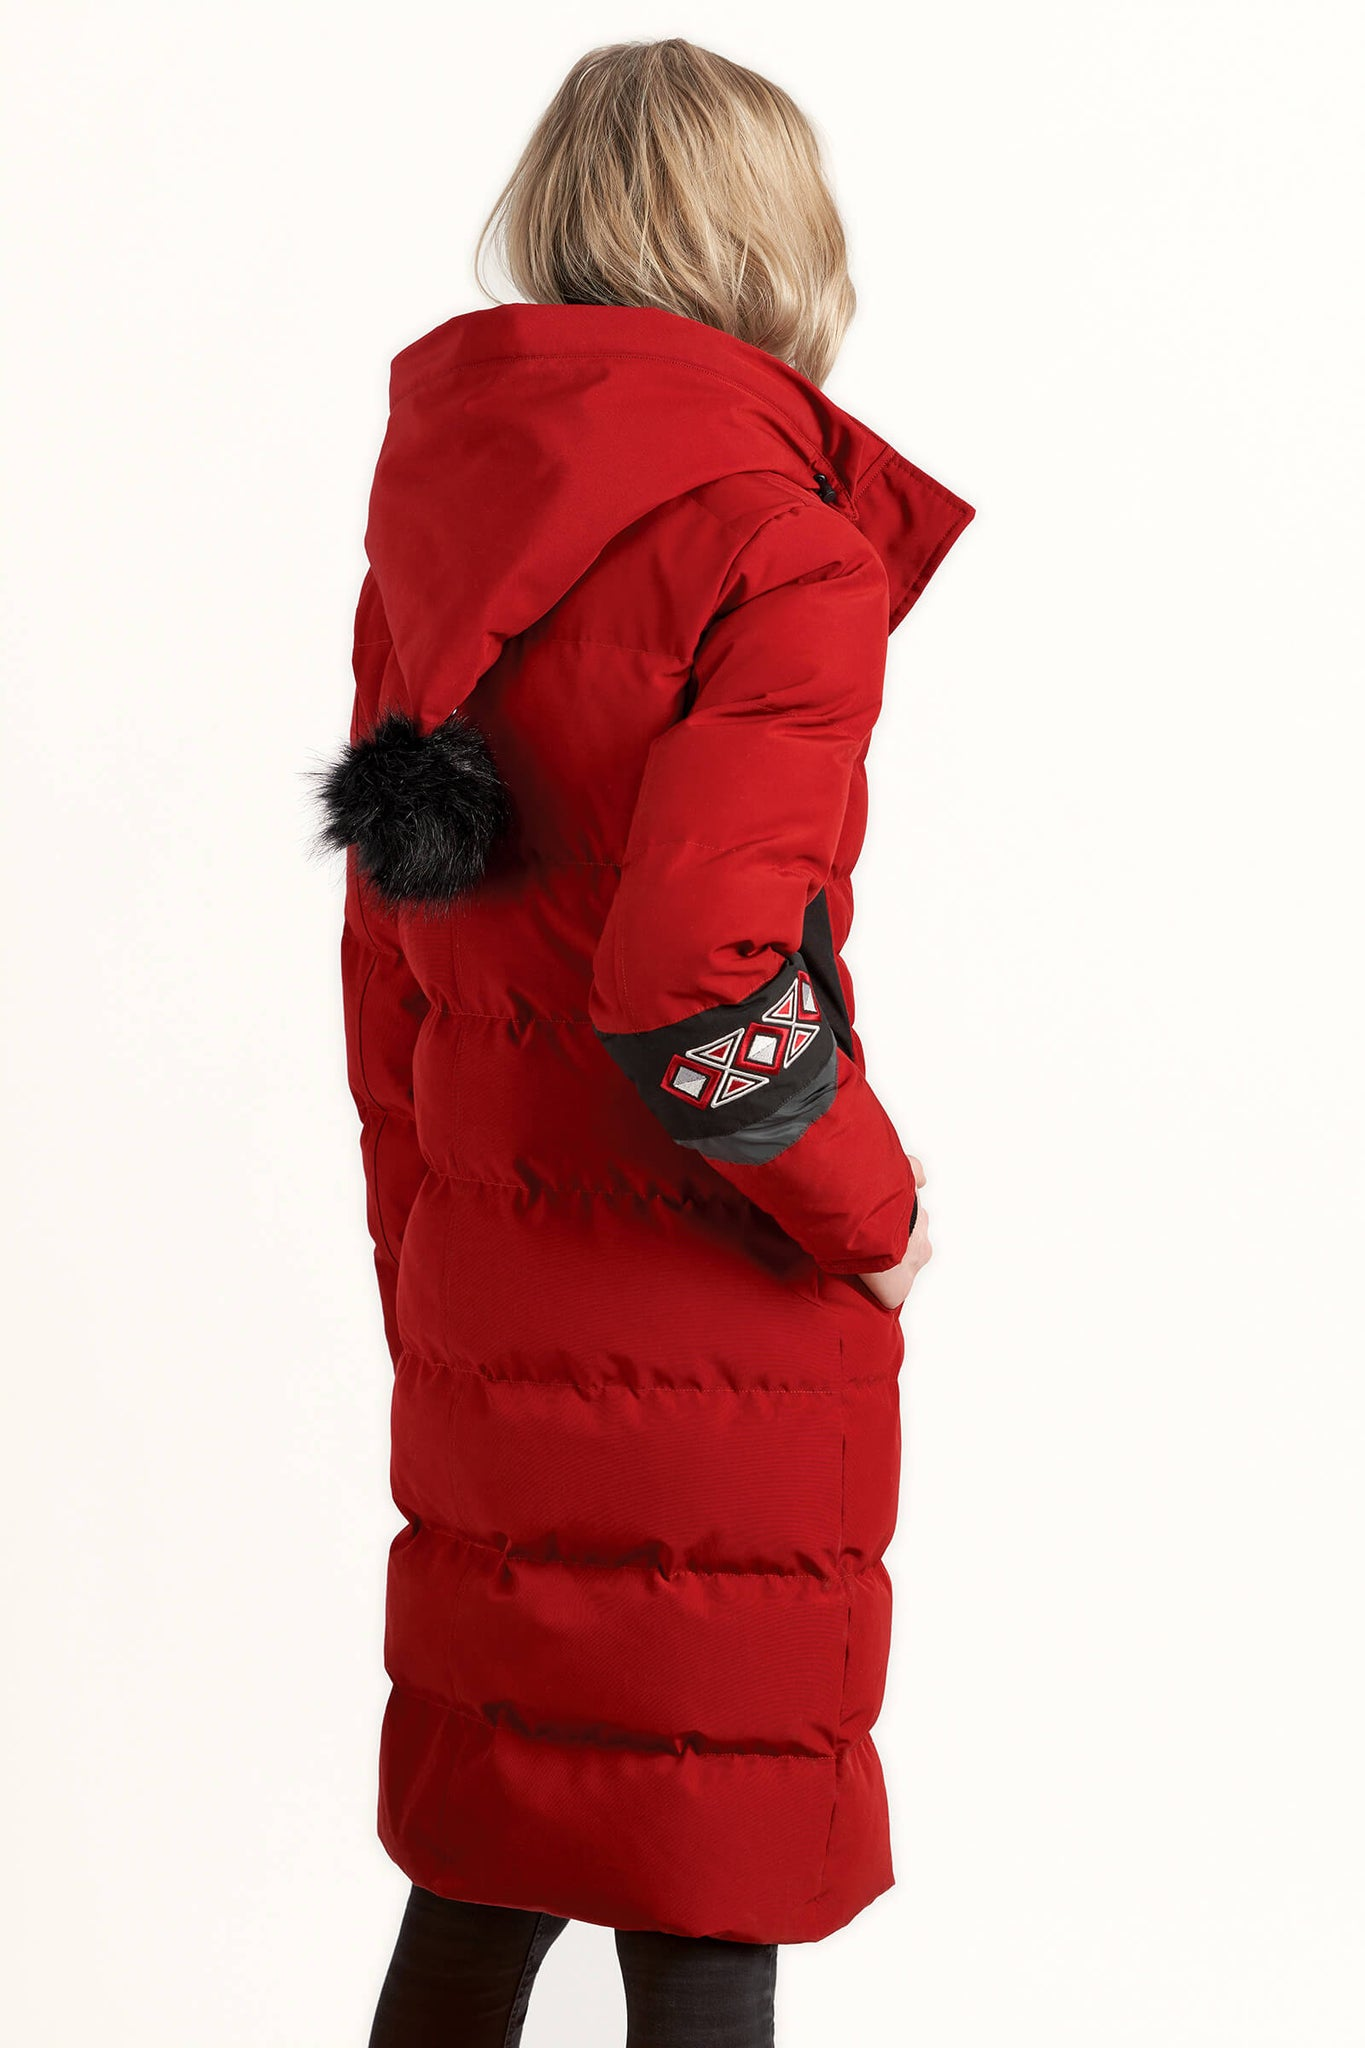 The back view of a women wearing a Tough Duck Black Merganser Calf-Length Jacket in red and black while looking into the distance.